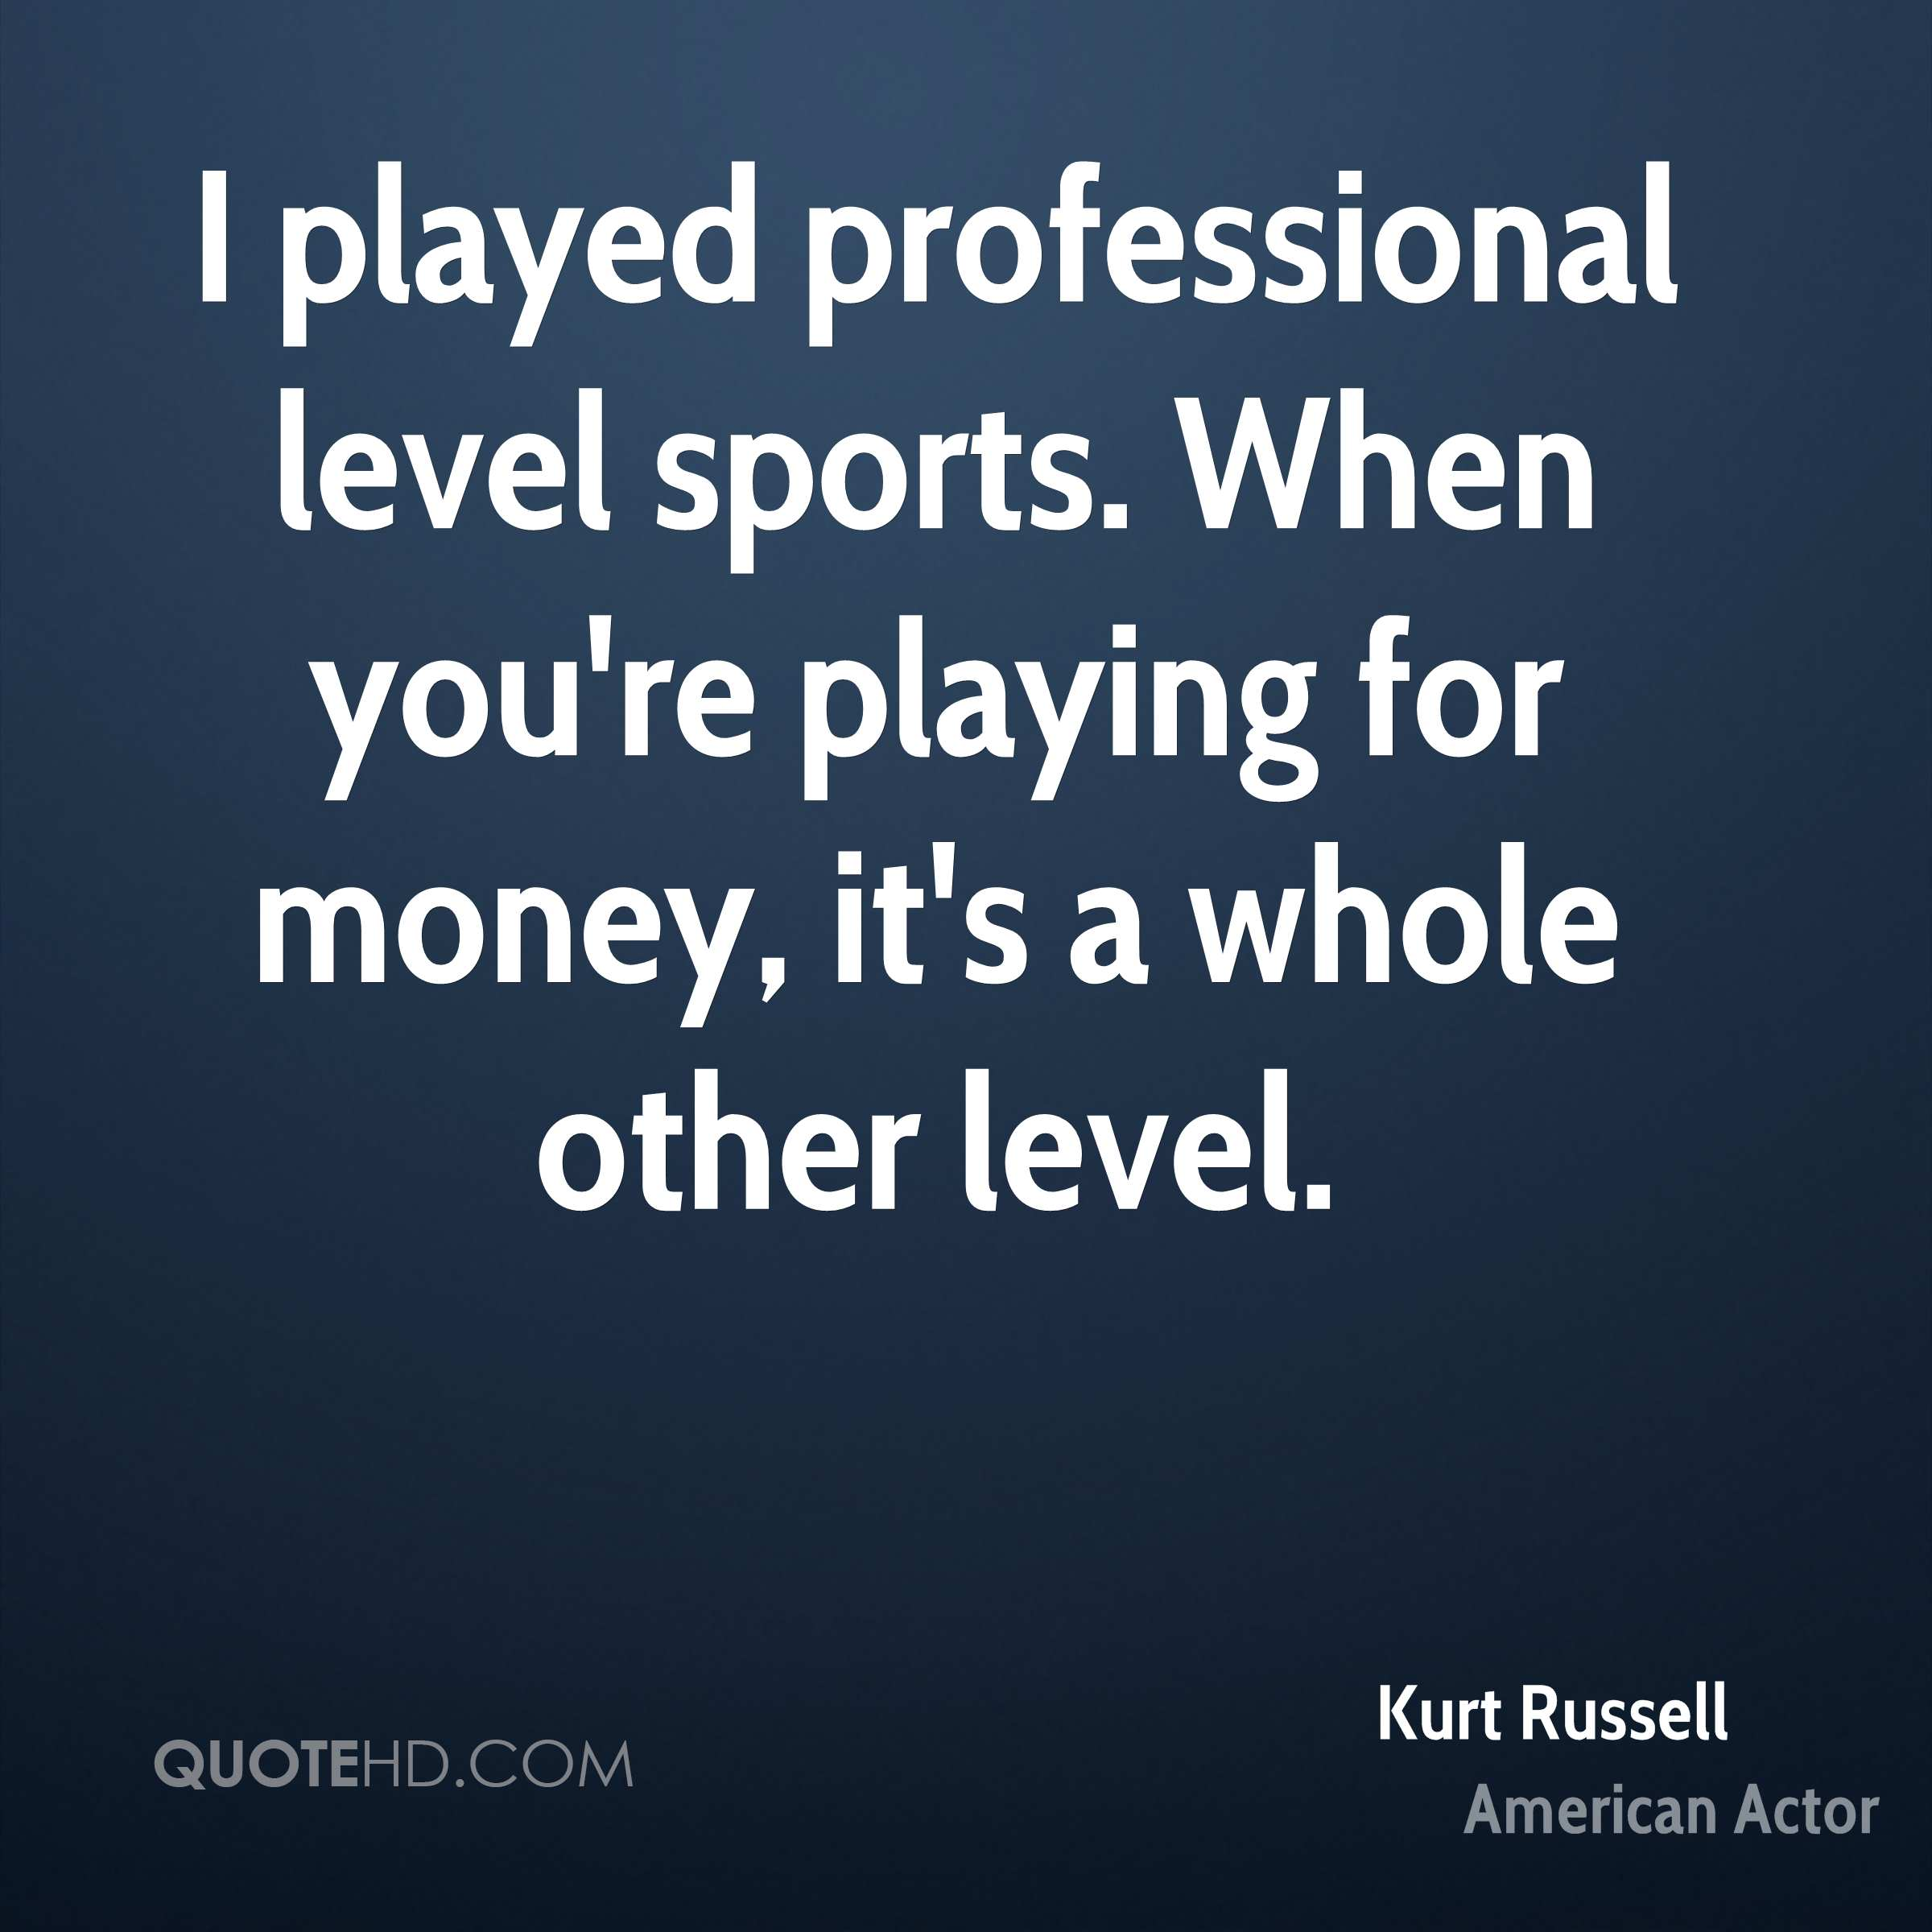 I played professional level sports. When you're playing for money, it's a whole other level.